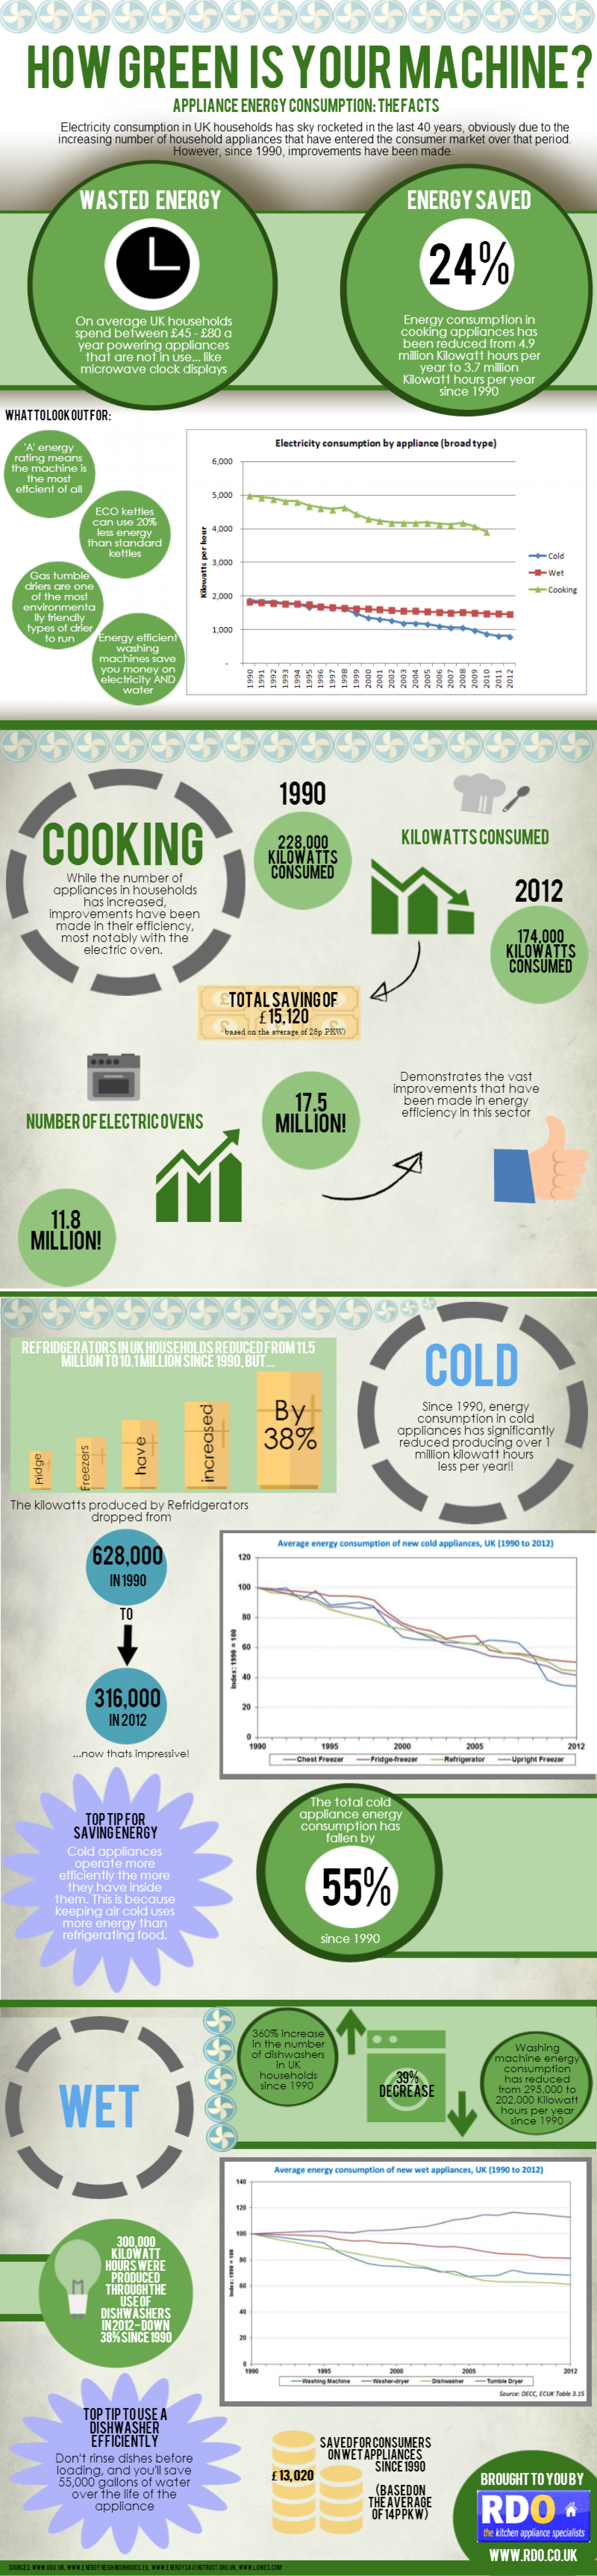 How Green is Your Machine? Infographic